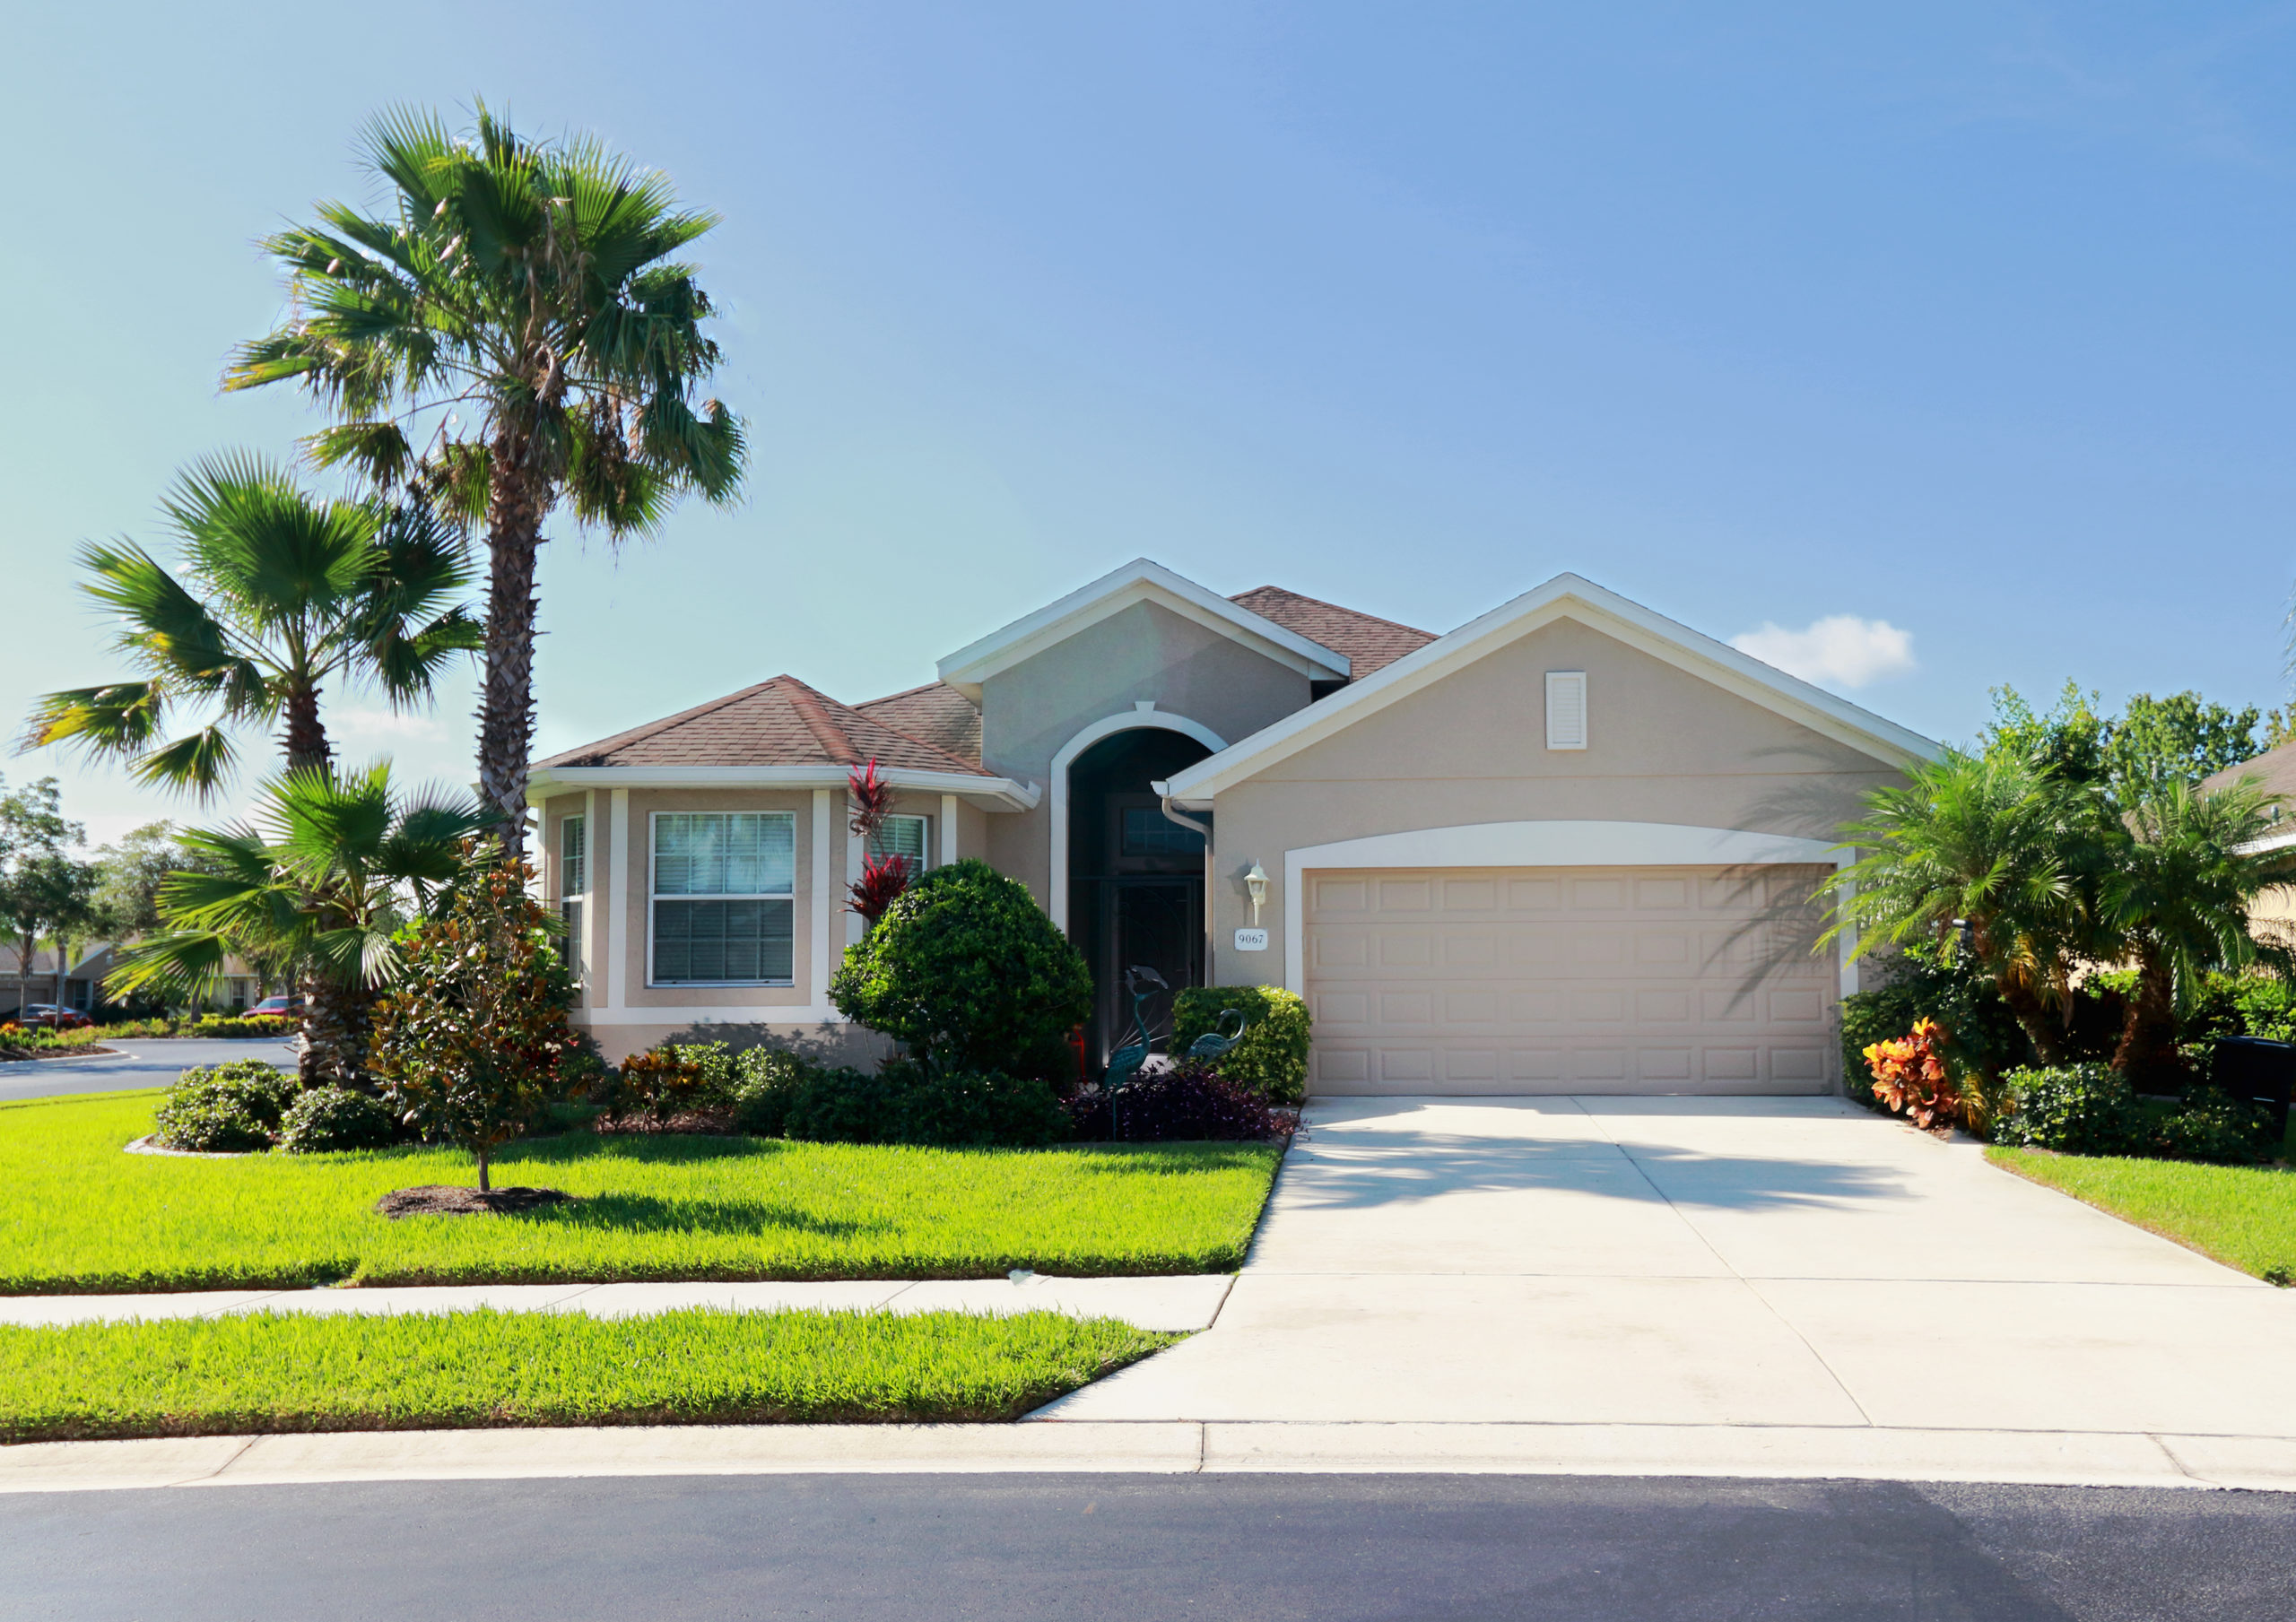 9067 39TH ST CIR E, PARRISH, FL 34219